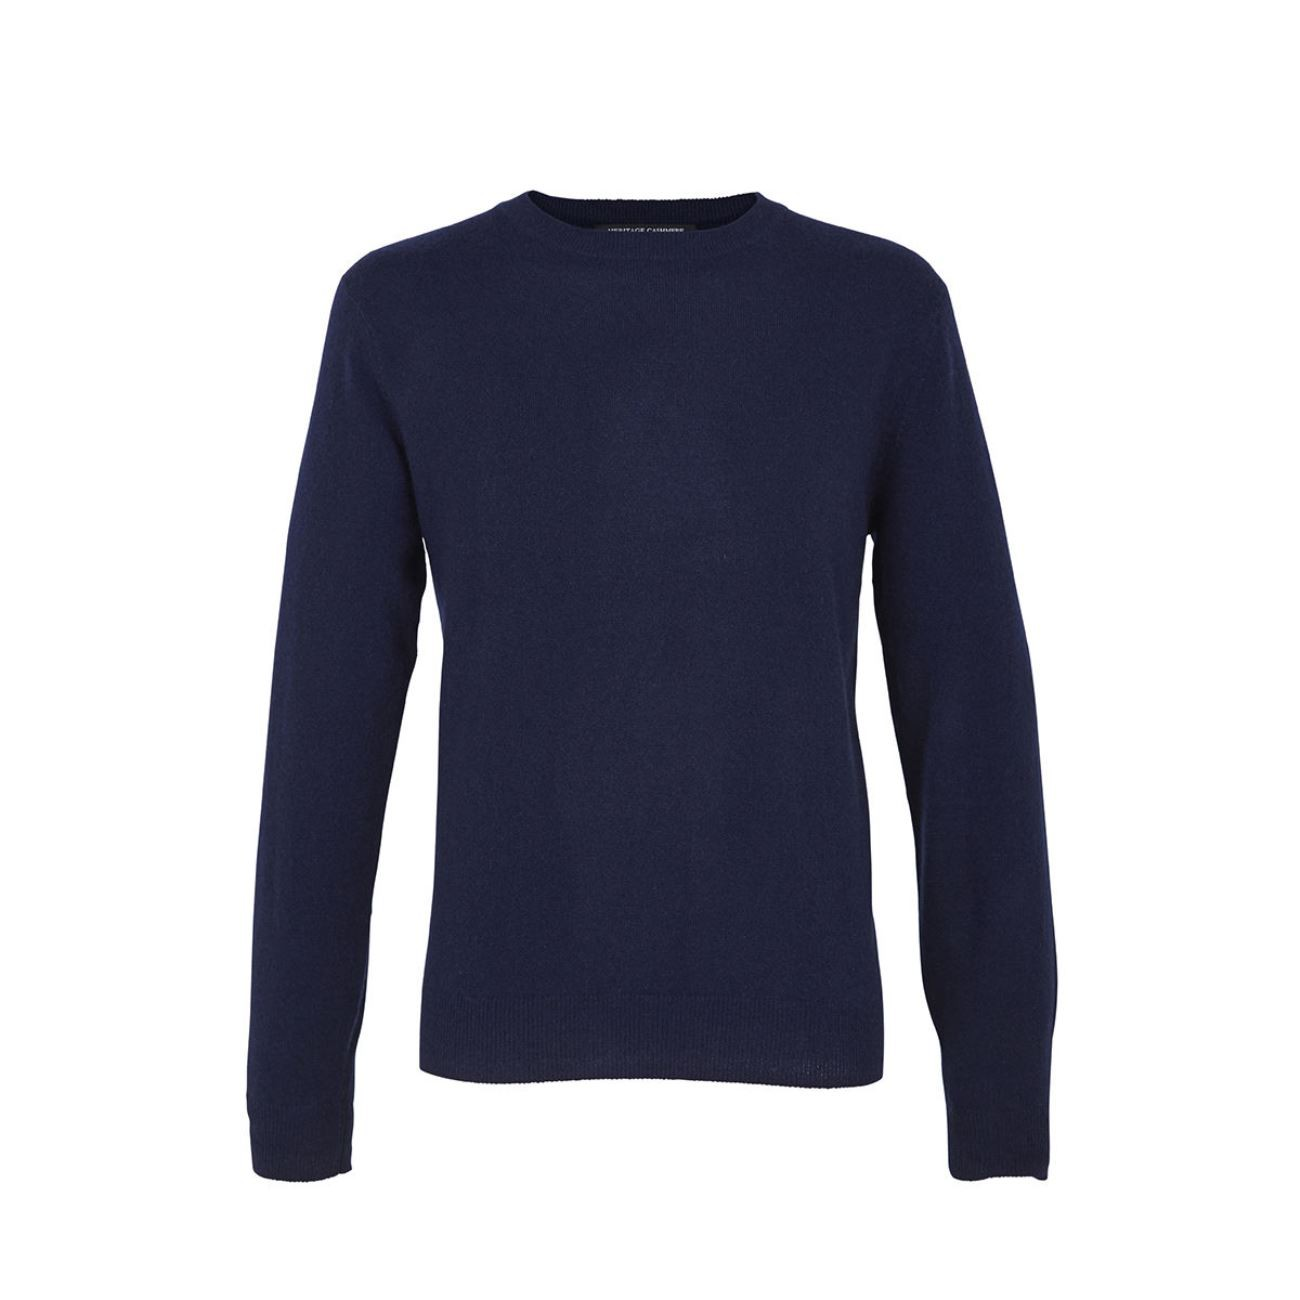 Navy Men's Crew Sweater - 100% Cashmere Made in Scotland